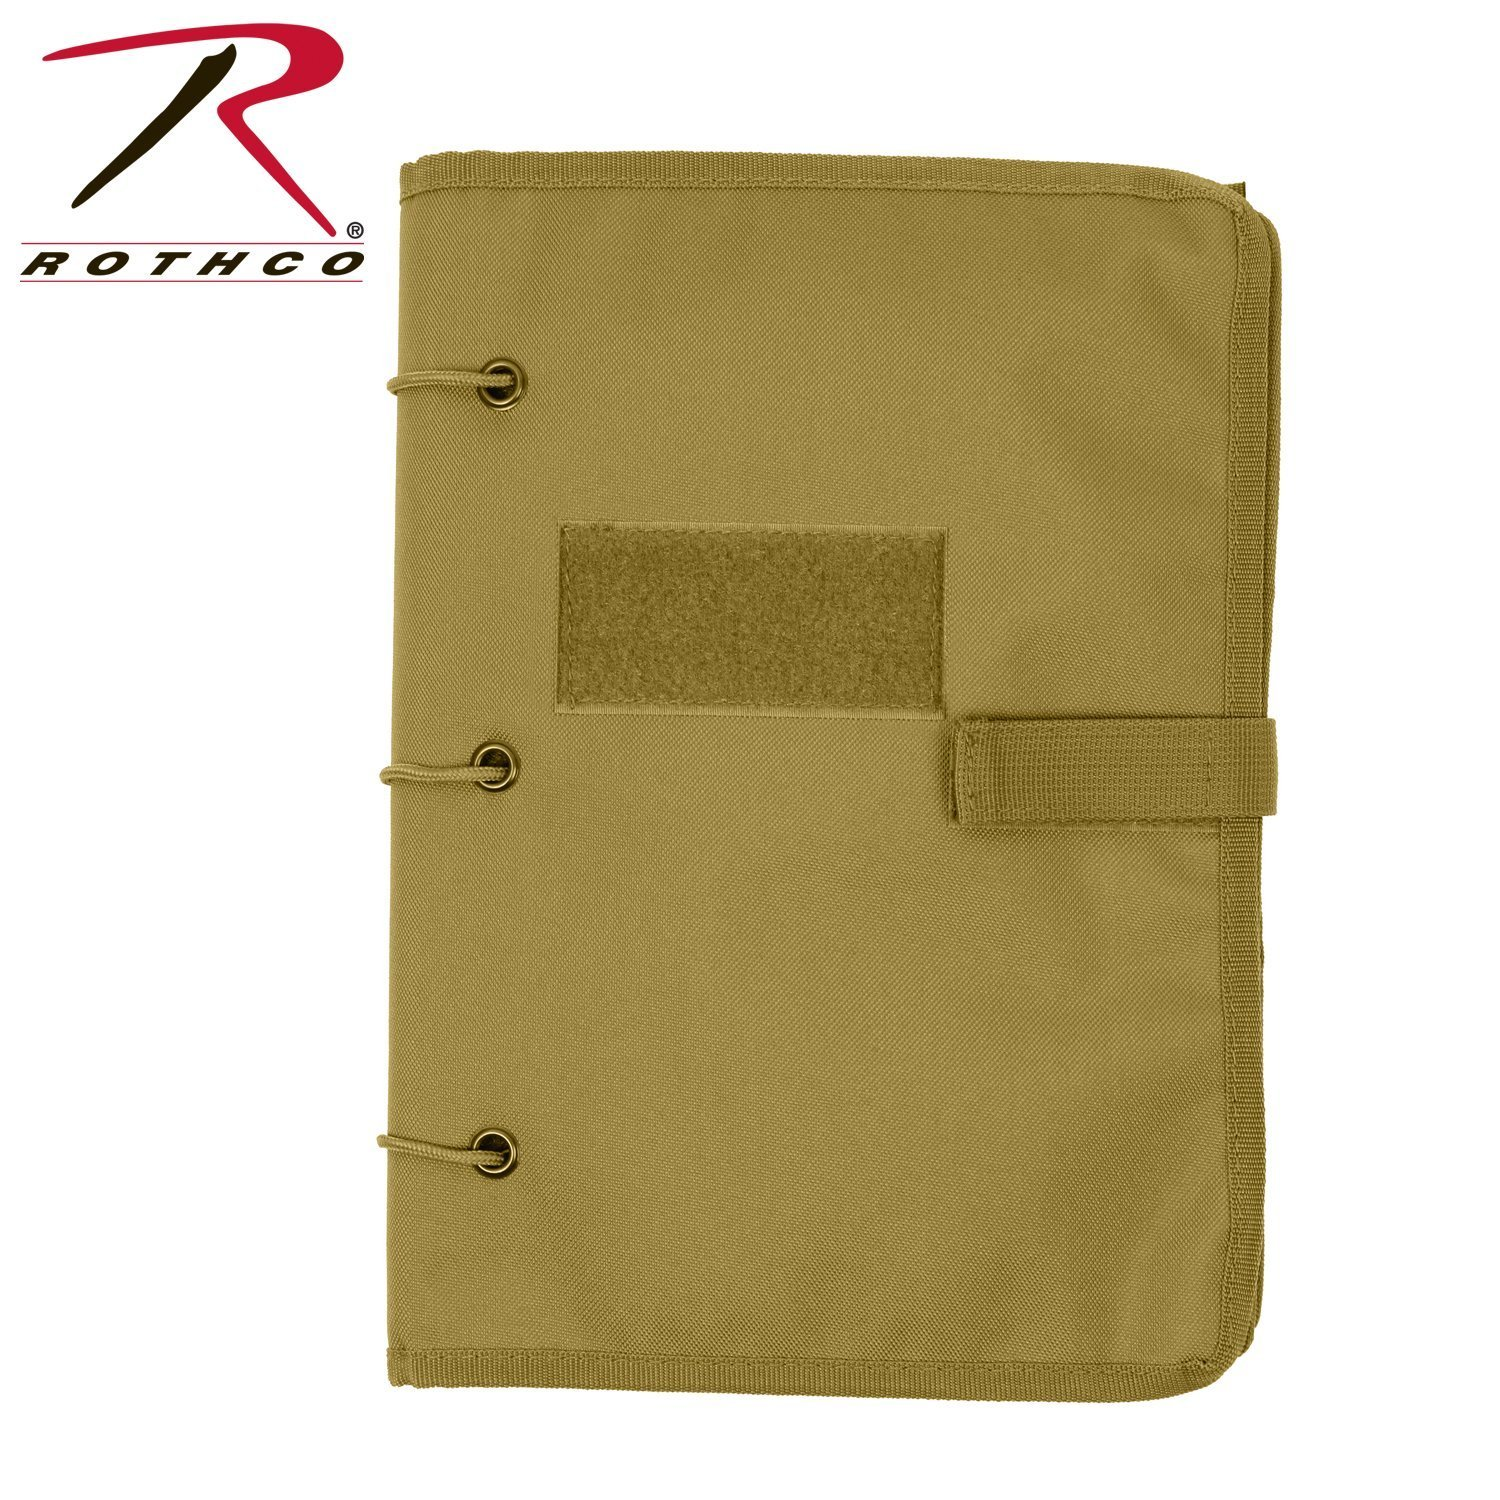 Rothco Hook & Loop Patch Book, Coyote RSR Group Inc 90210